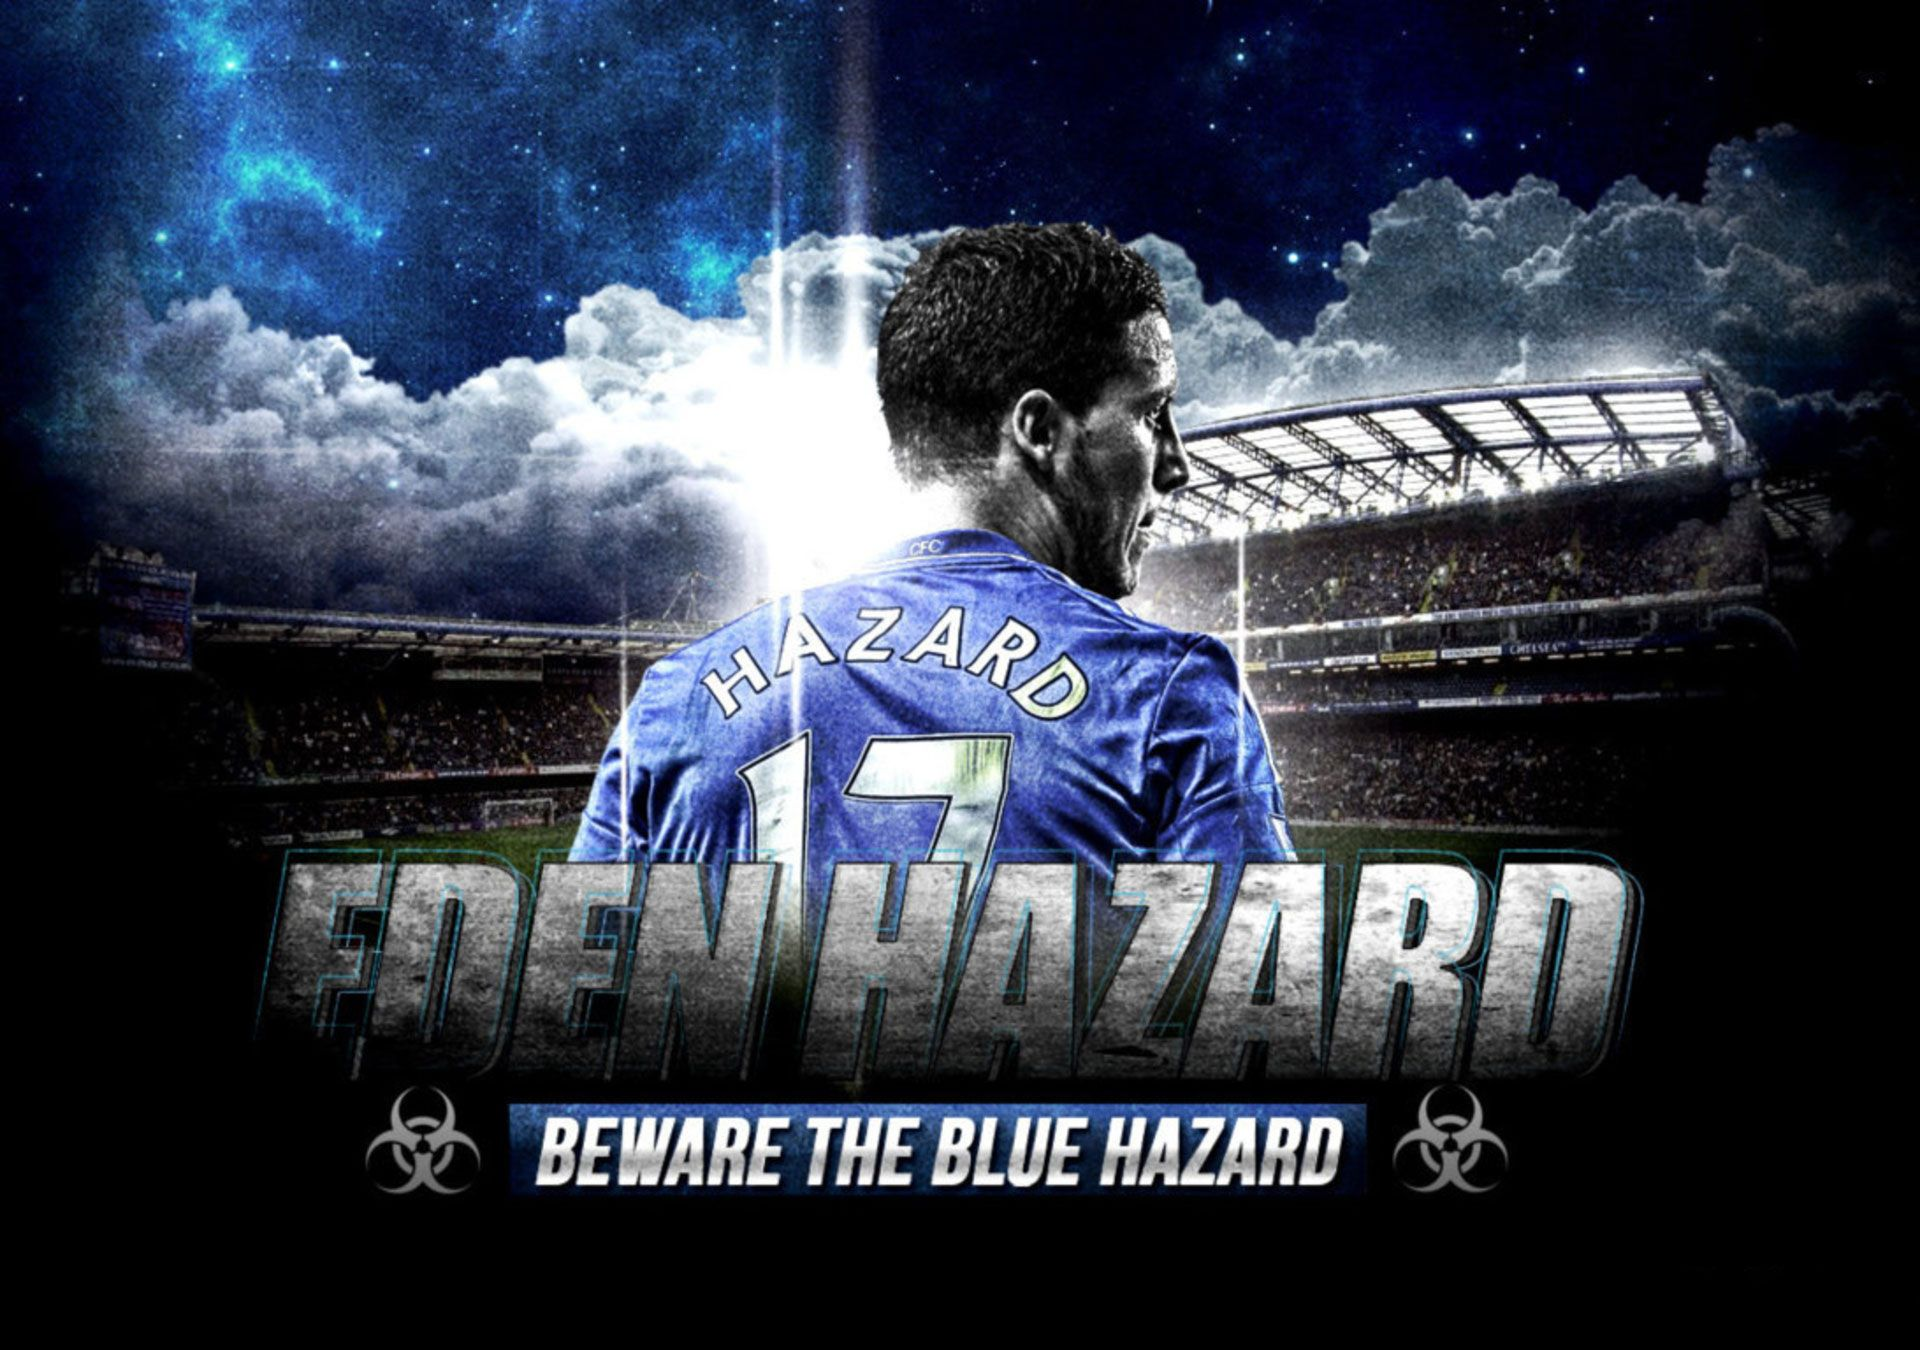 Full Hd 3d Wallpapers 1920x1080 Free Download For Mobile Chelsea Fc Wallpapers Hd Pixelstalk Net